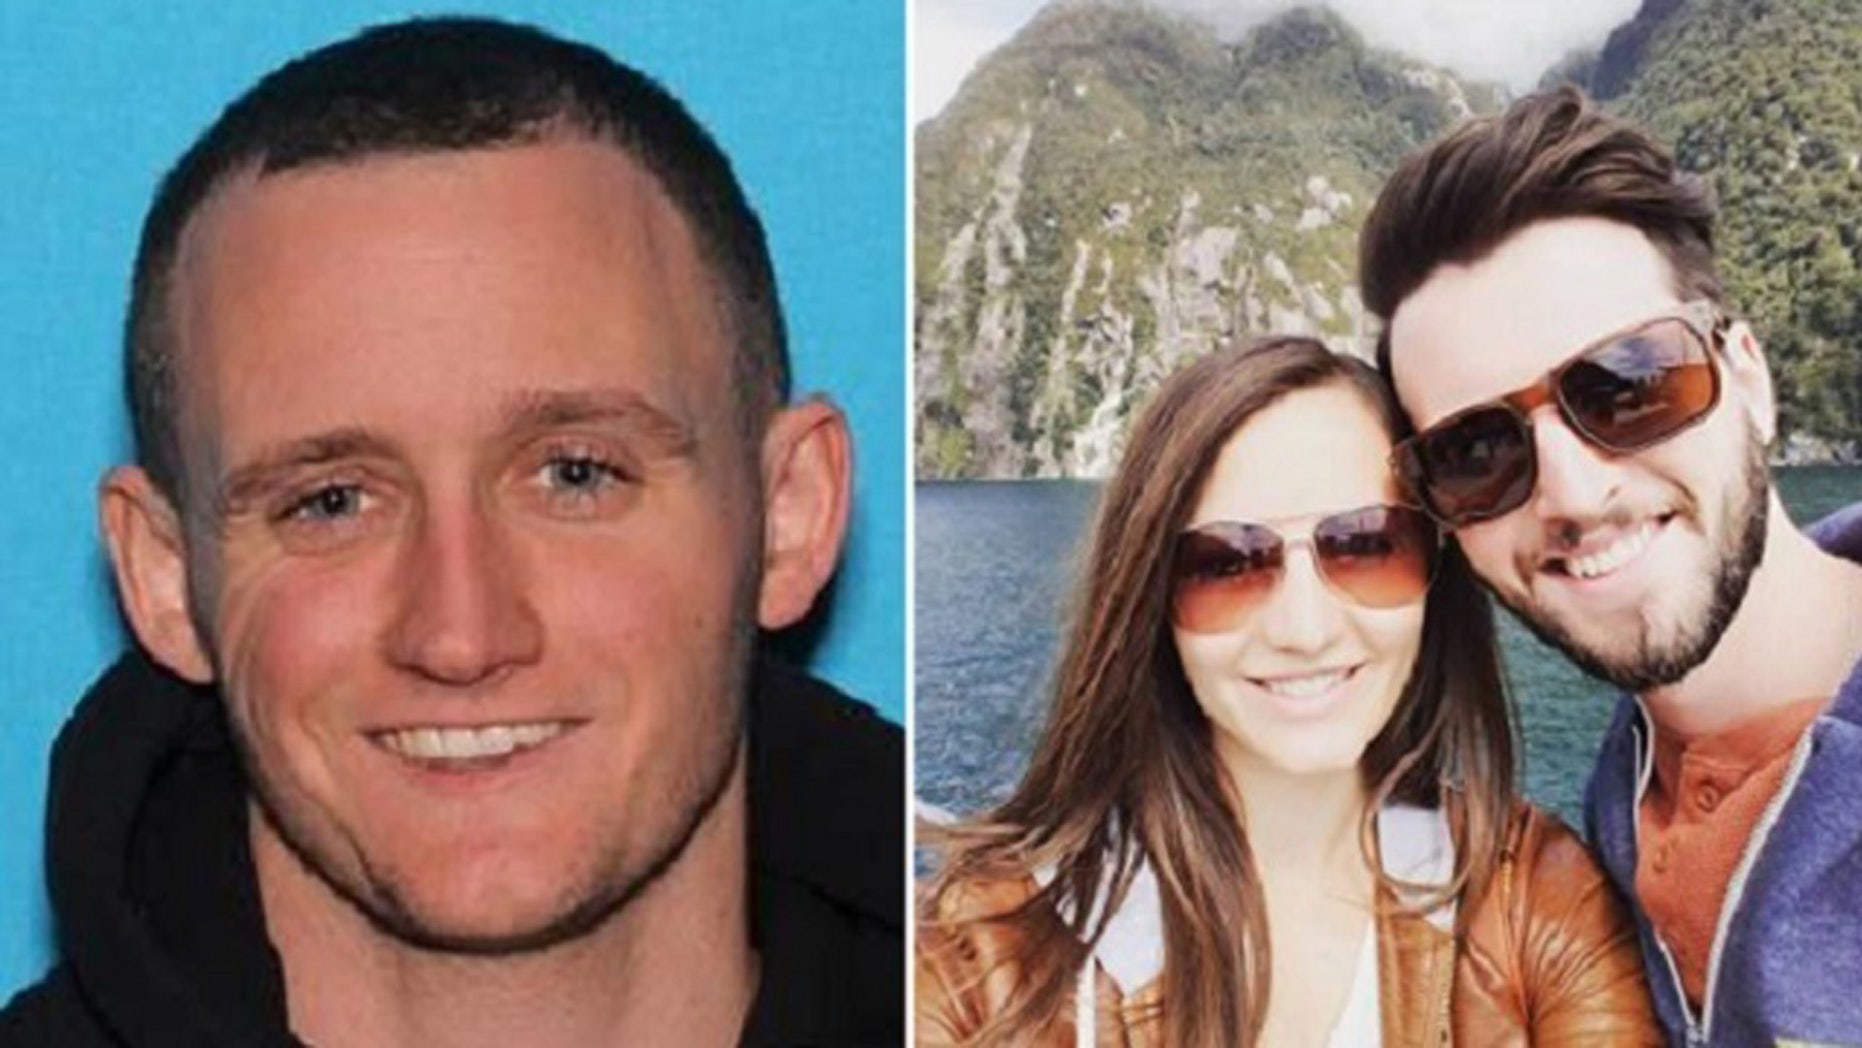 Daniel Kenneth Mooney, 26, is being sought for questioning in the double murder of his neighbors Tyler and Christine Roy.